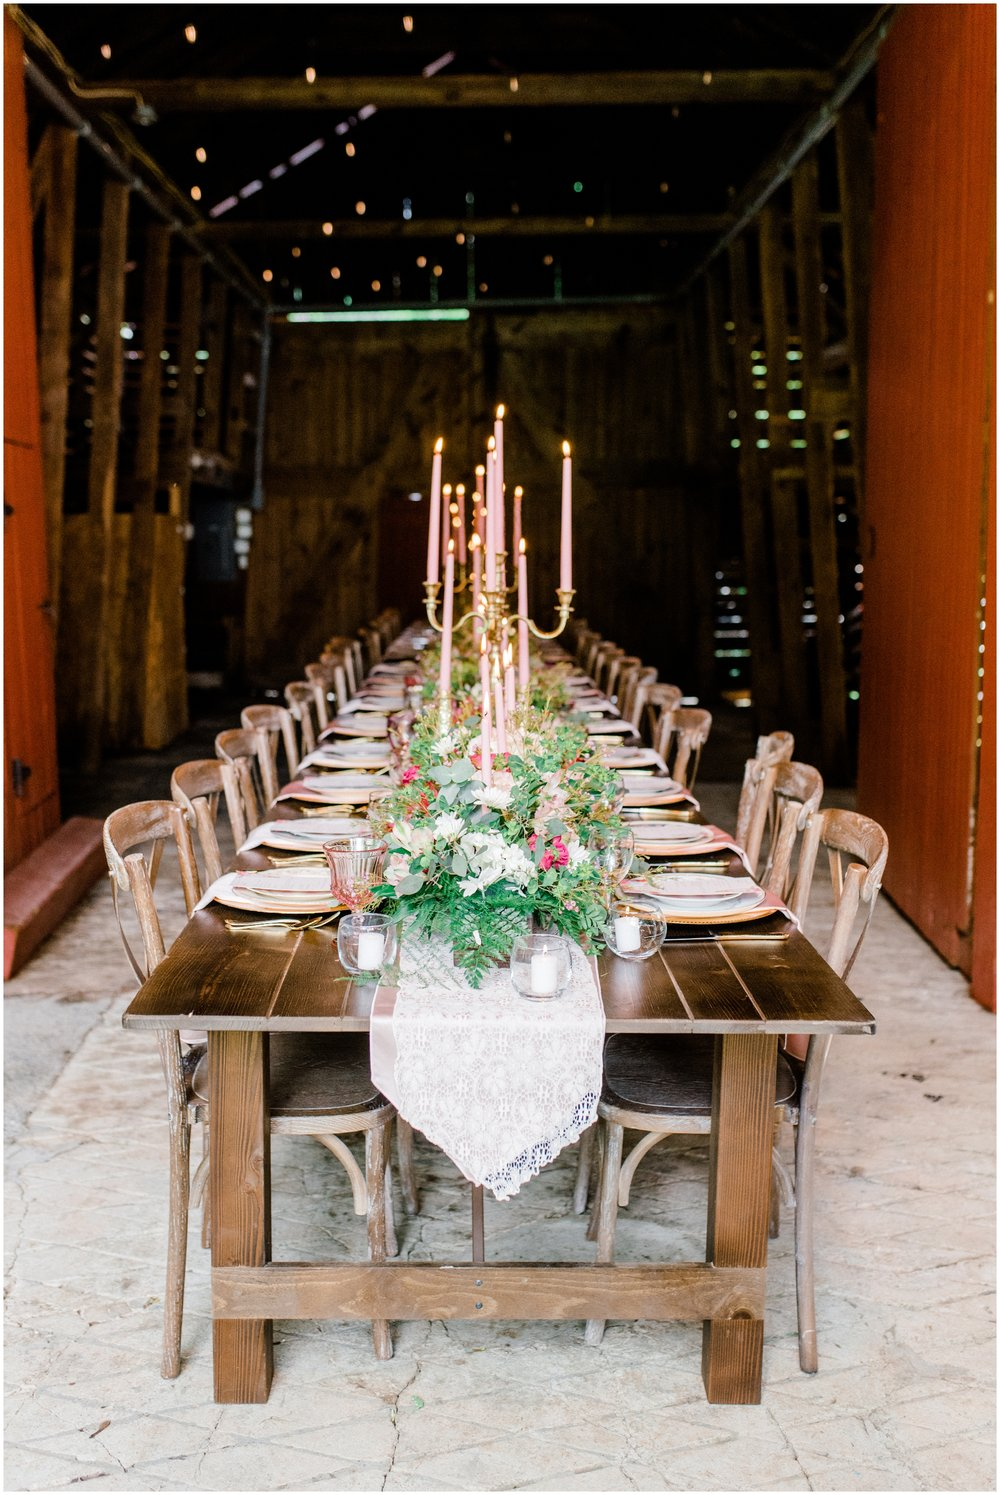 Spring Winery Bridal Shower at Nissley Vineyards in Lancaster County, PA - Krista Brackin Photography_0024.jpg